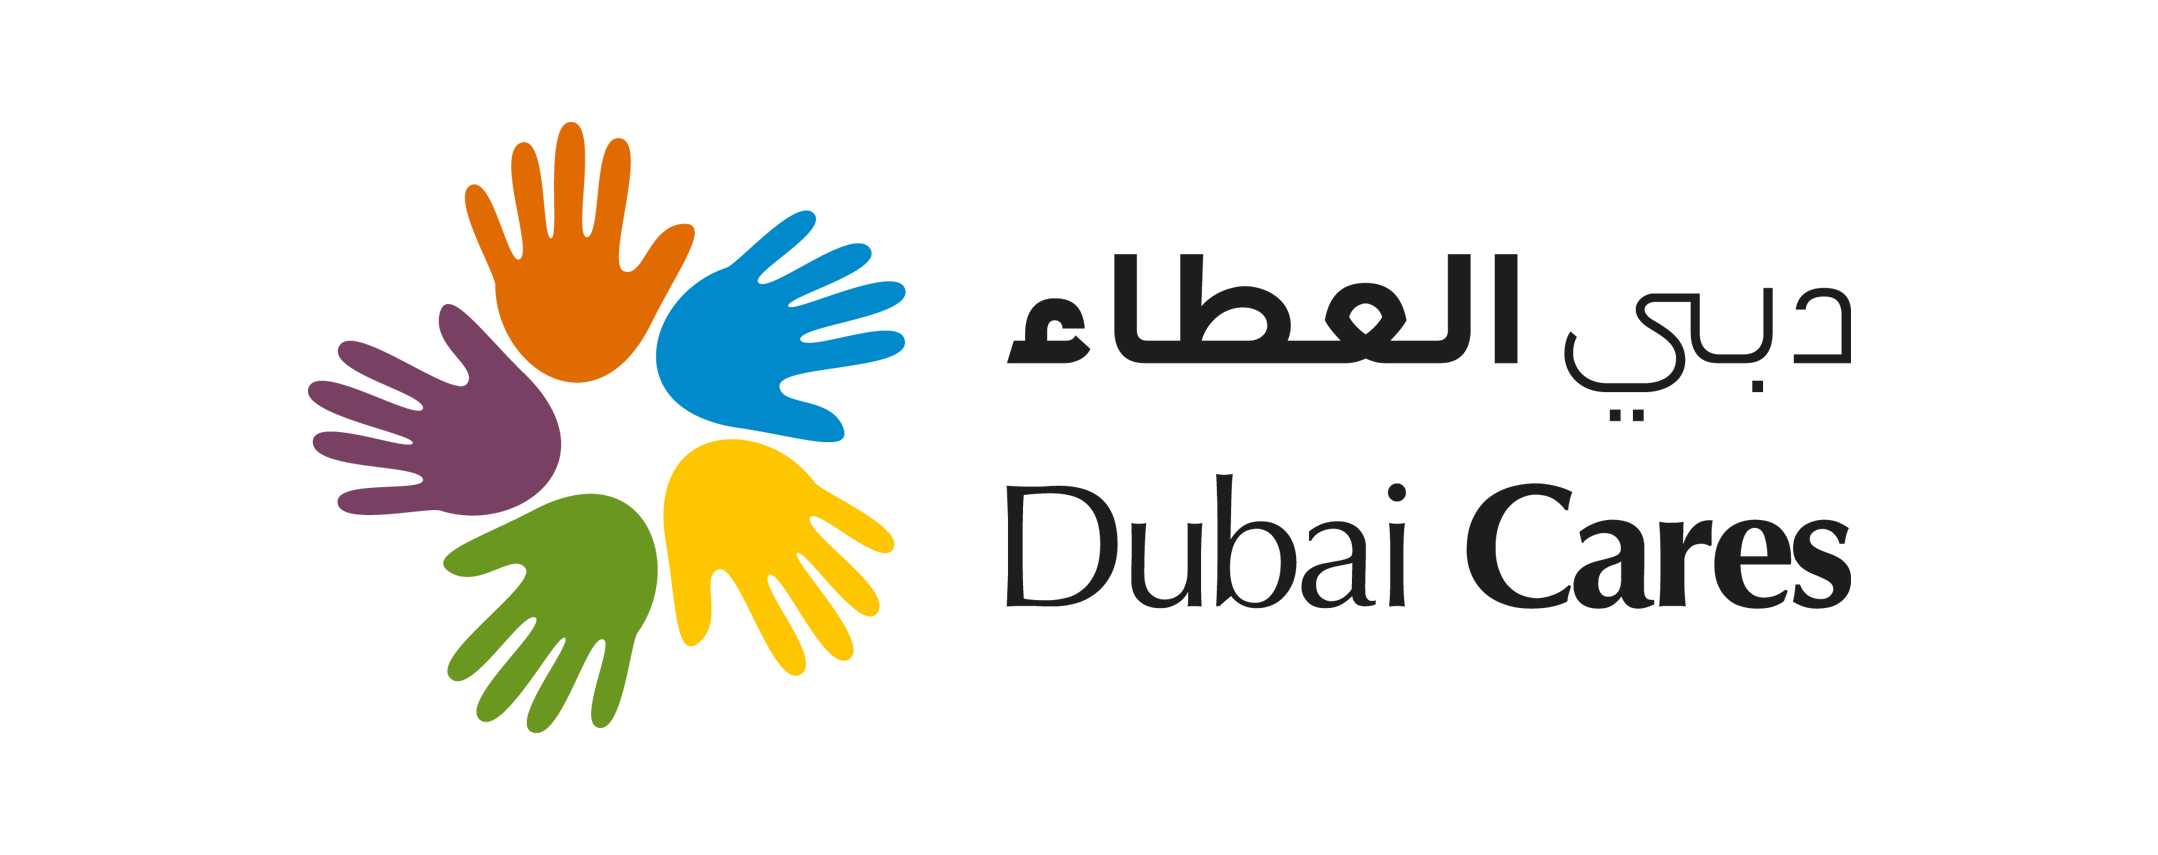 Hussain Sajwani- Dubai Cares donated 10 apartments valued at AED 10 million for auctioning to support Dubai Cares initiatives.